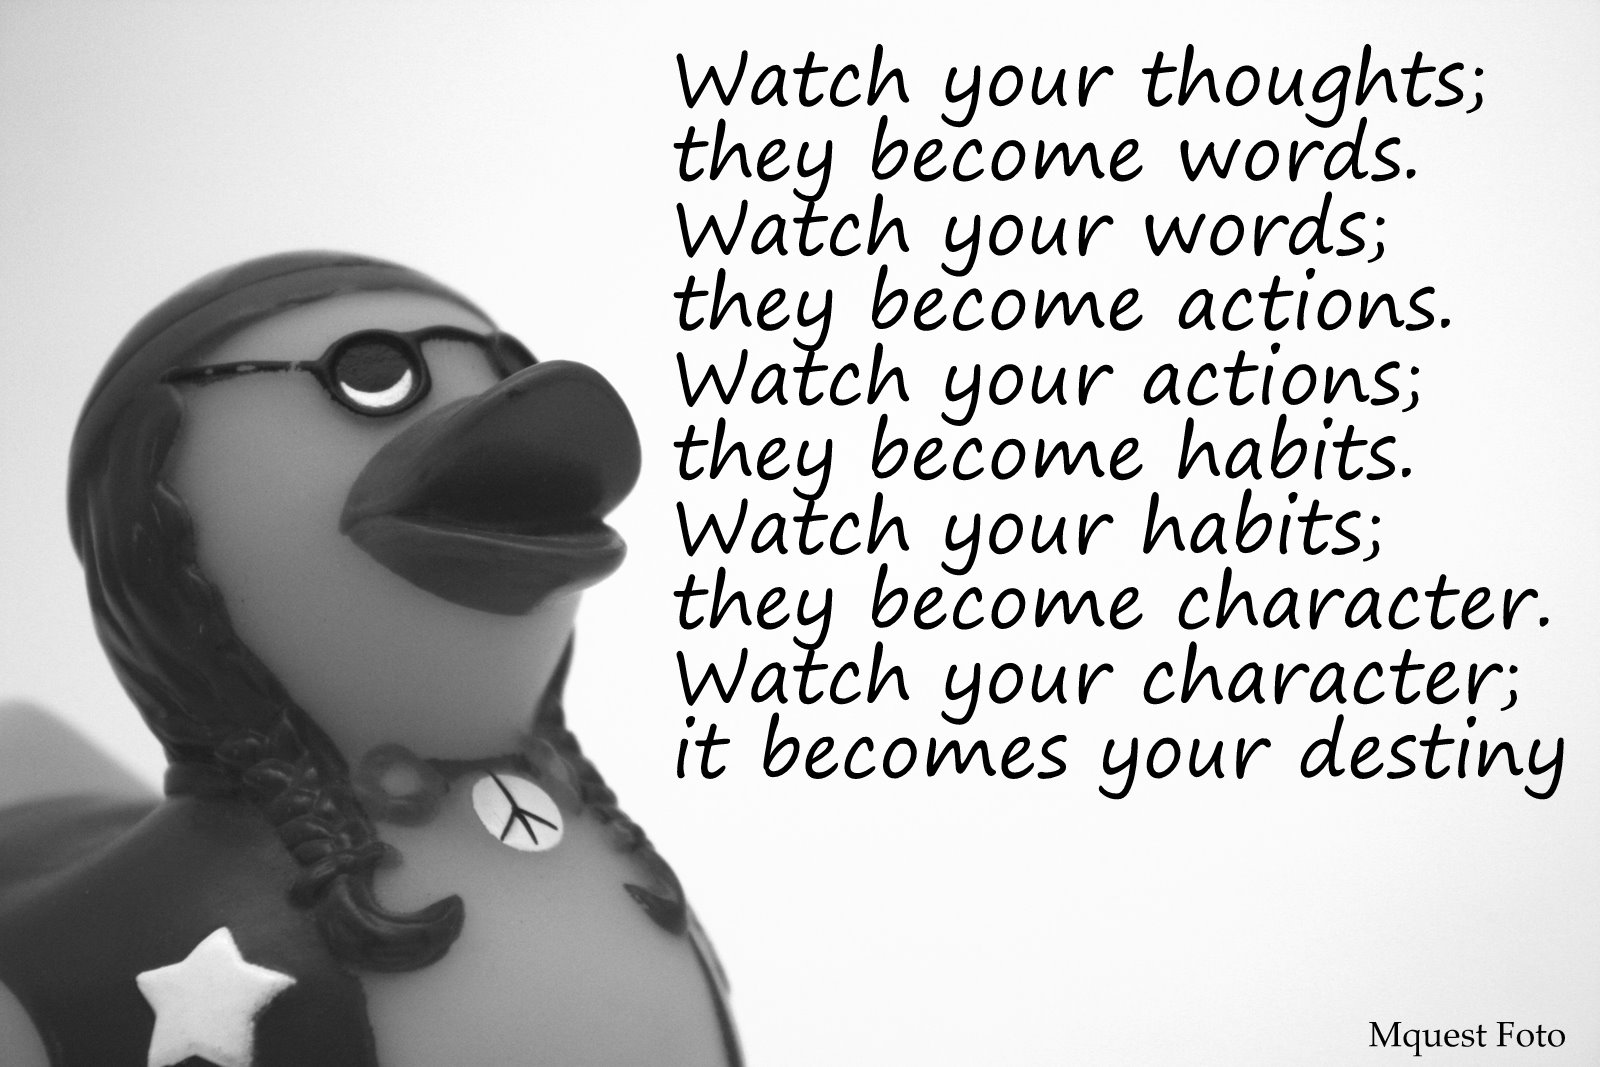 watch your actions